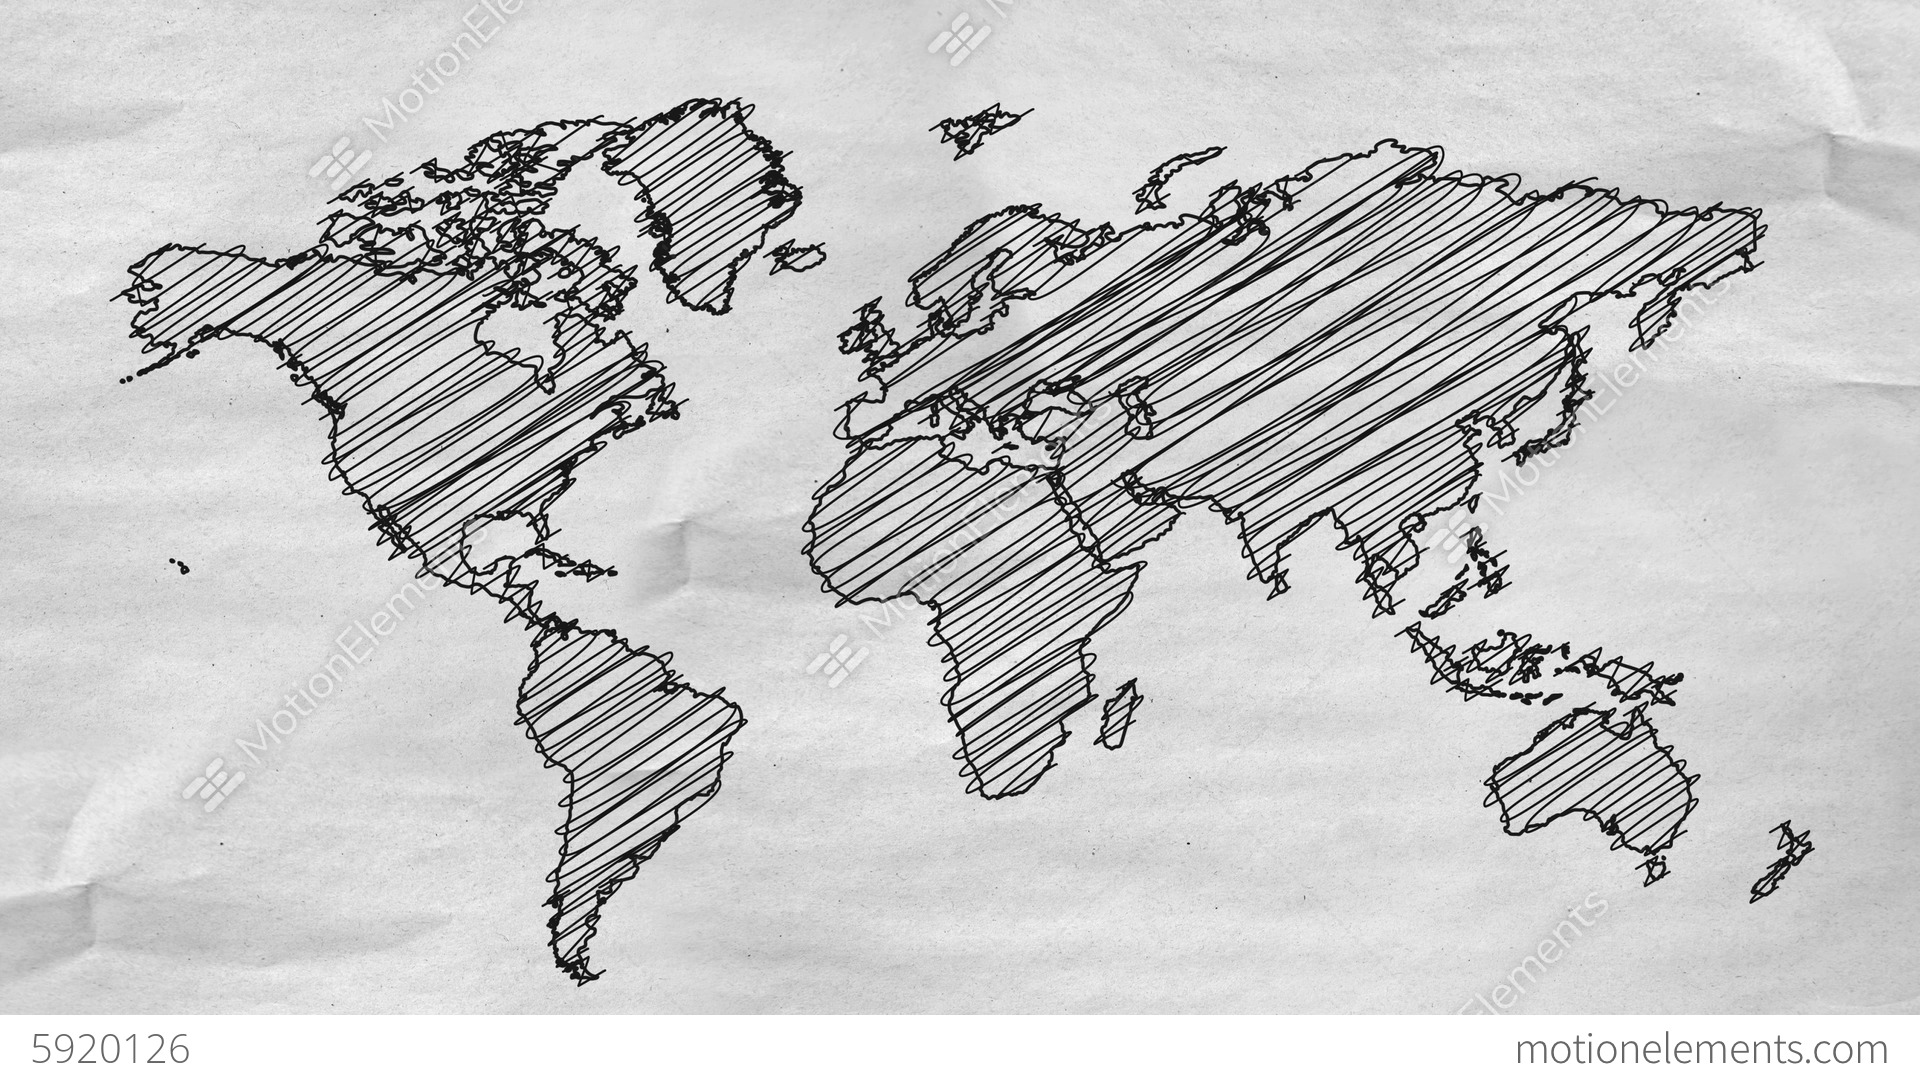 world map drawing alpha channel